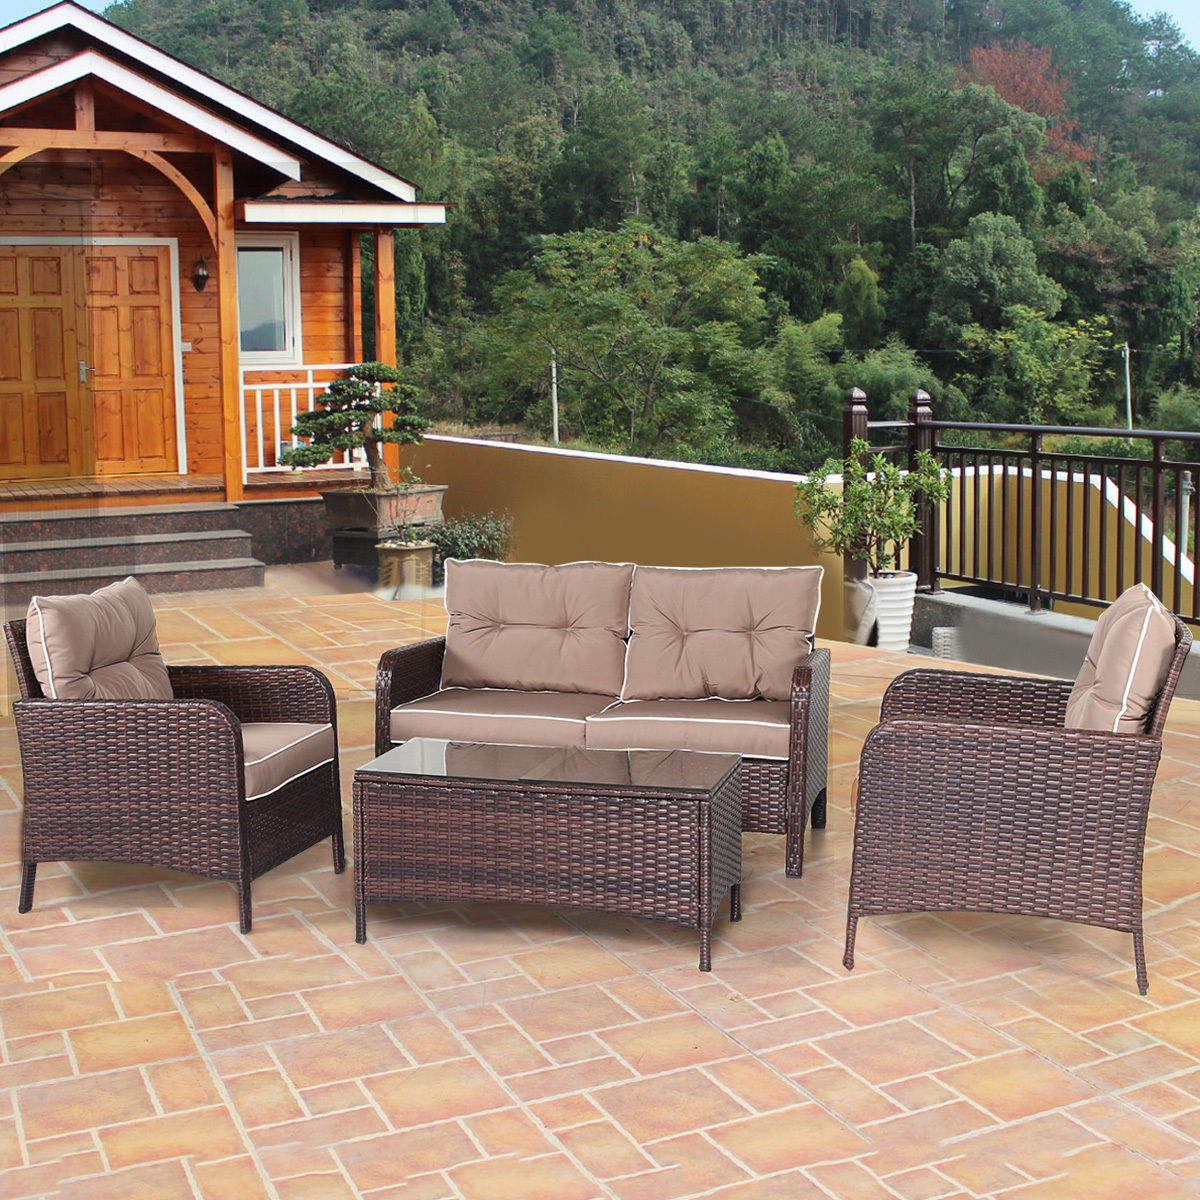 walmart wicker patio furniture sets Costway 4 PCS Outdoor Patio Rattan Wicker Furniture Set